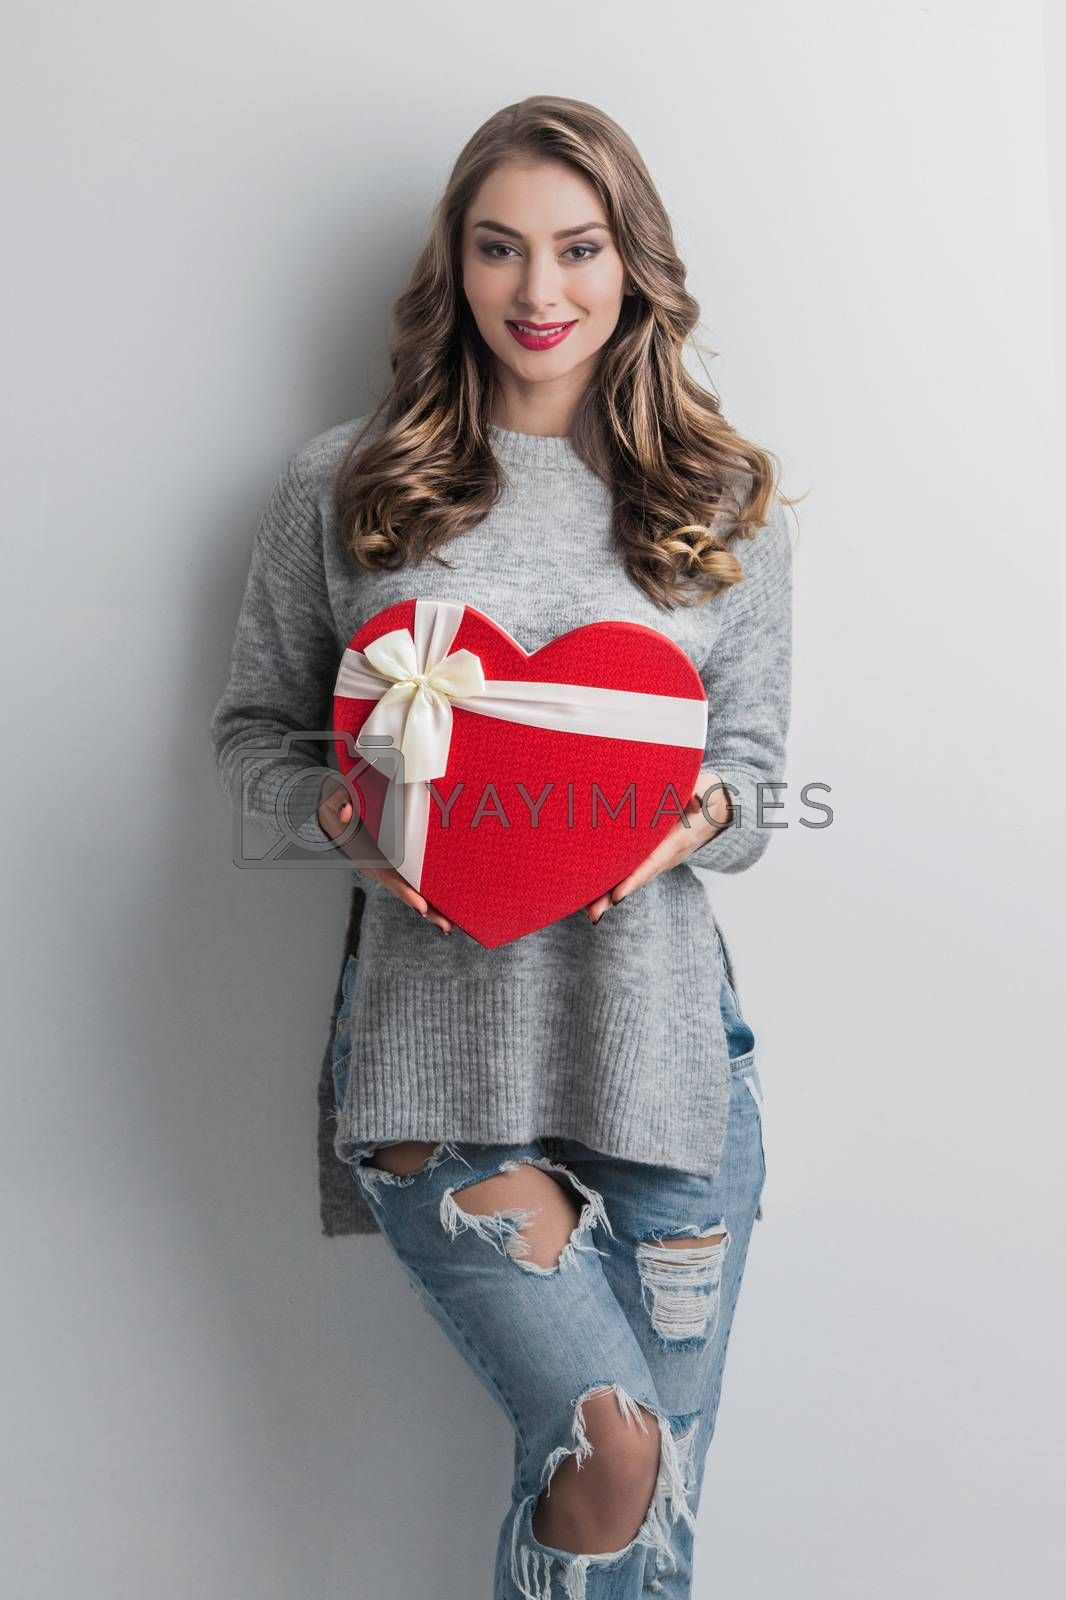 Young girl with red heart-shaped gift box on white background